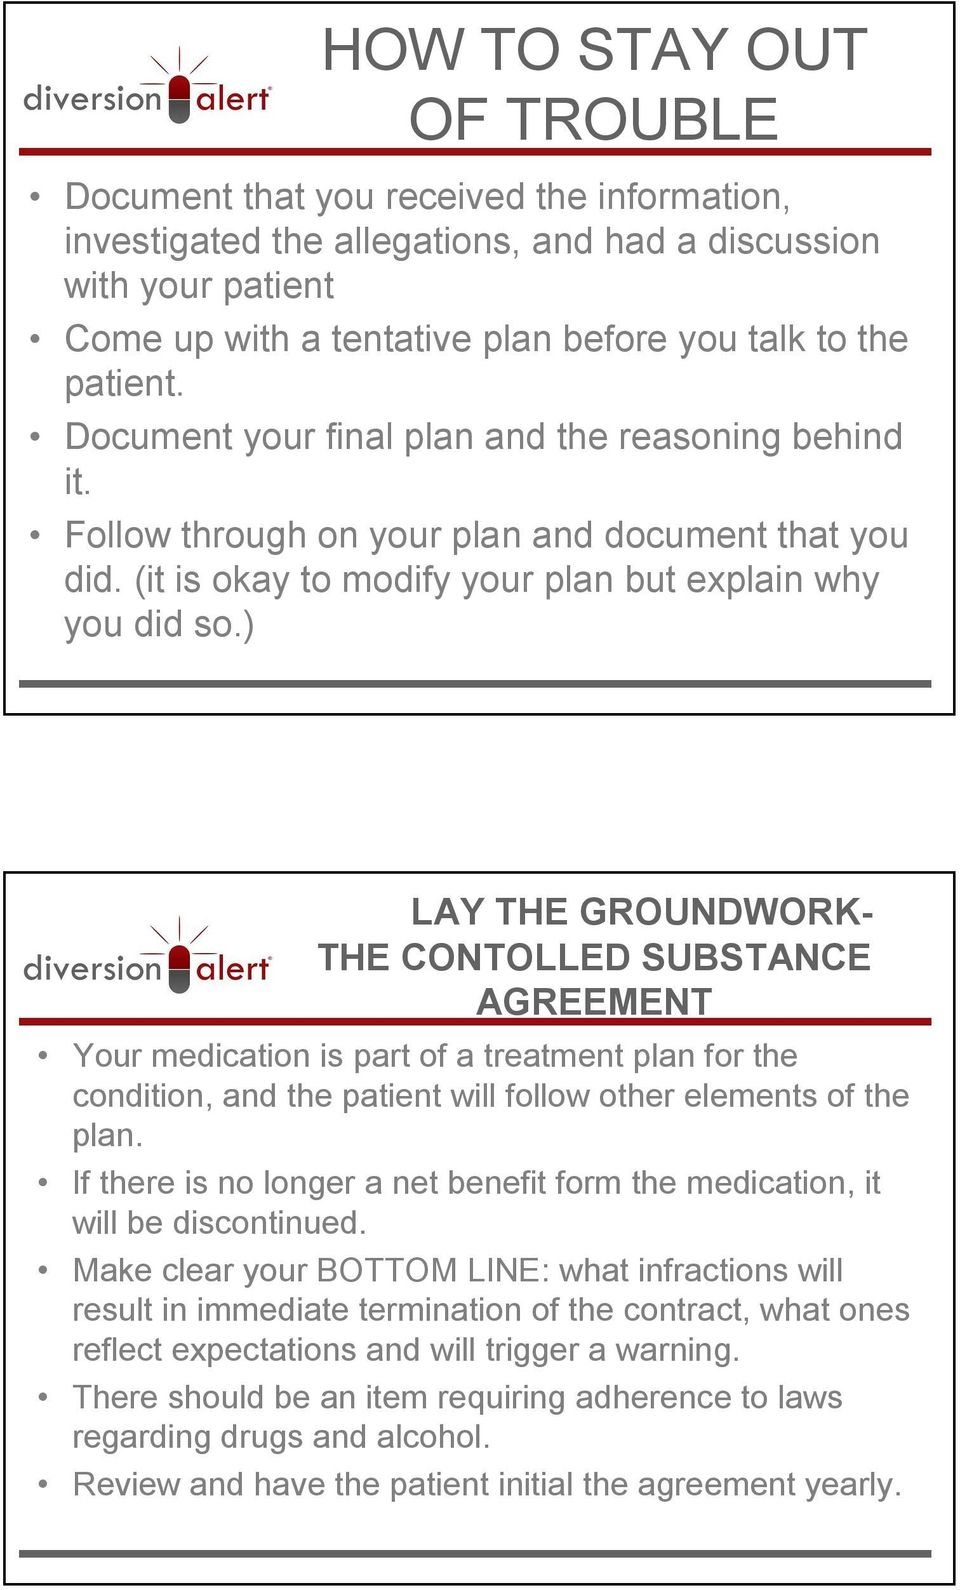 ) LAY THE GROUNDWORK- THE CONTOLLED SUBSTANCE AGREEMENT Your medication is part of a treatment plan for the condition, and the patient will follow other elements of the plan.